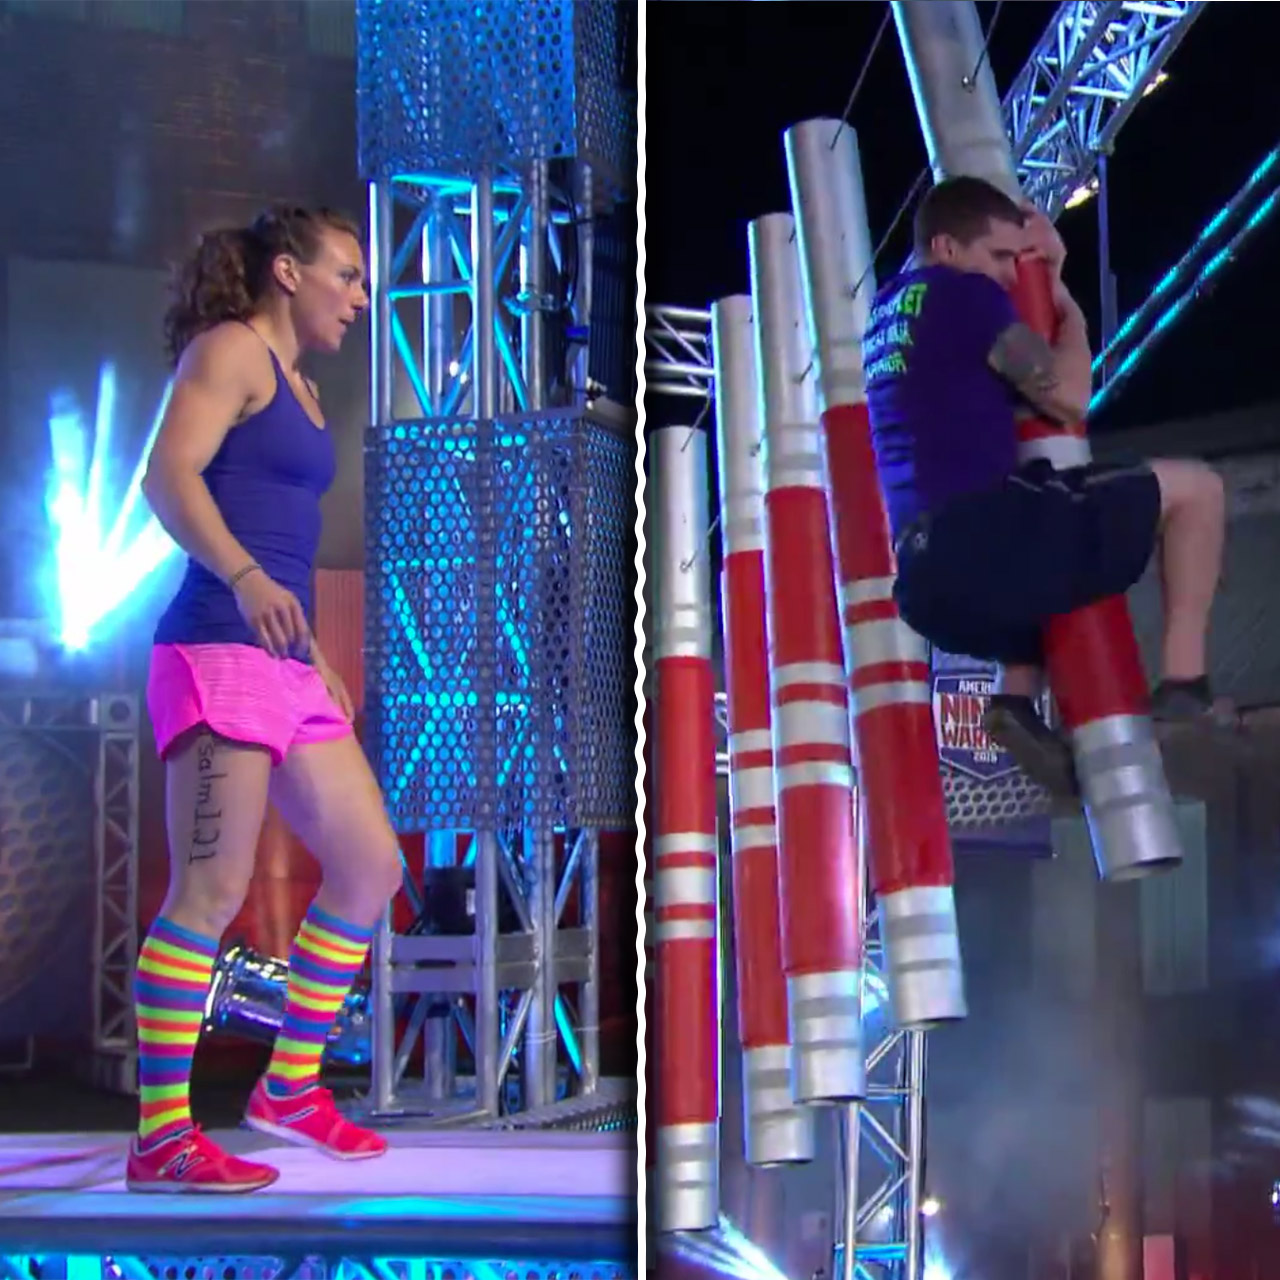 Michelle Warnky and Ryan Ripley inspire with gritty 'American Ninja Warrior'